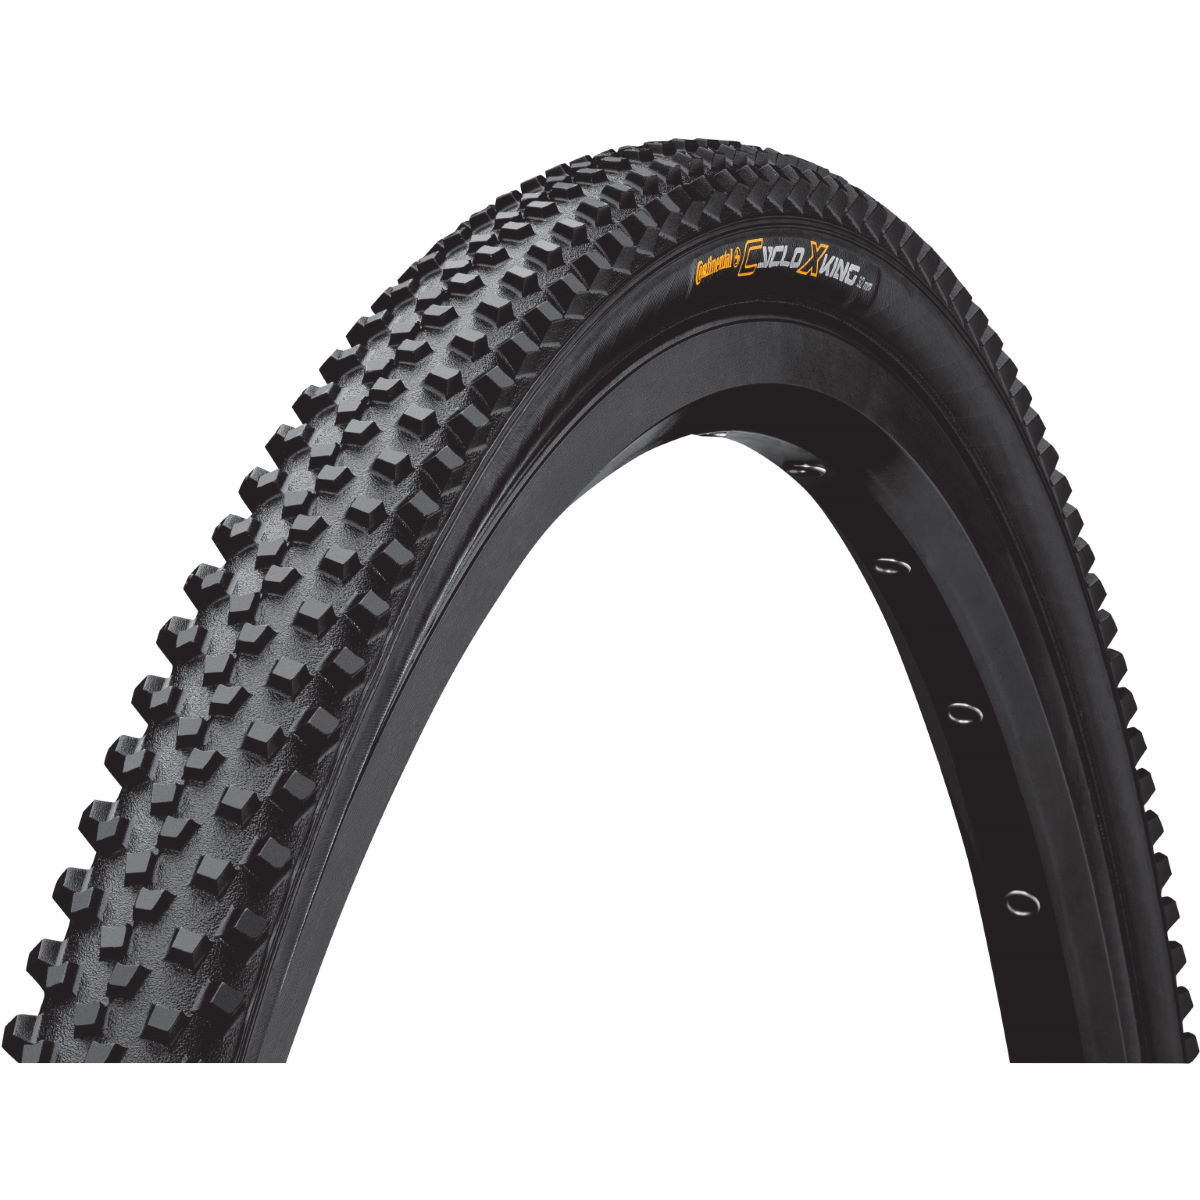 Continental Continental Cyclo X King RaceSport Folding CX Tyre   Tyres